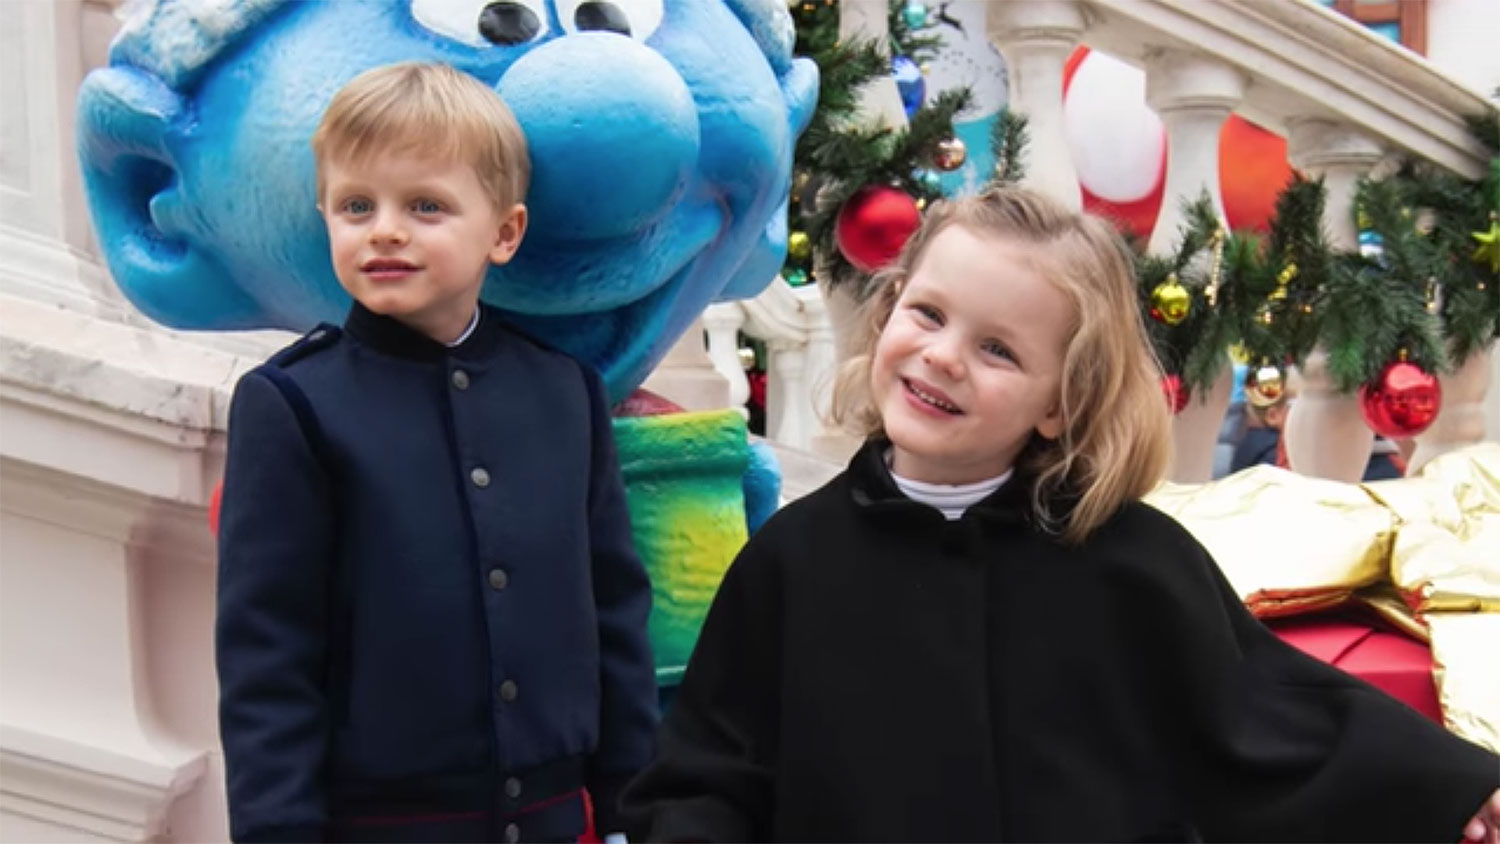 Monaco Royals Twins birthday